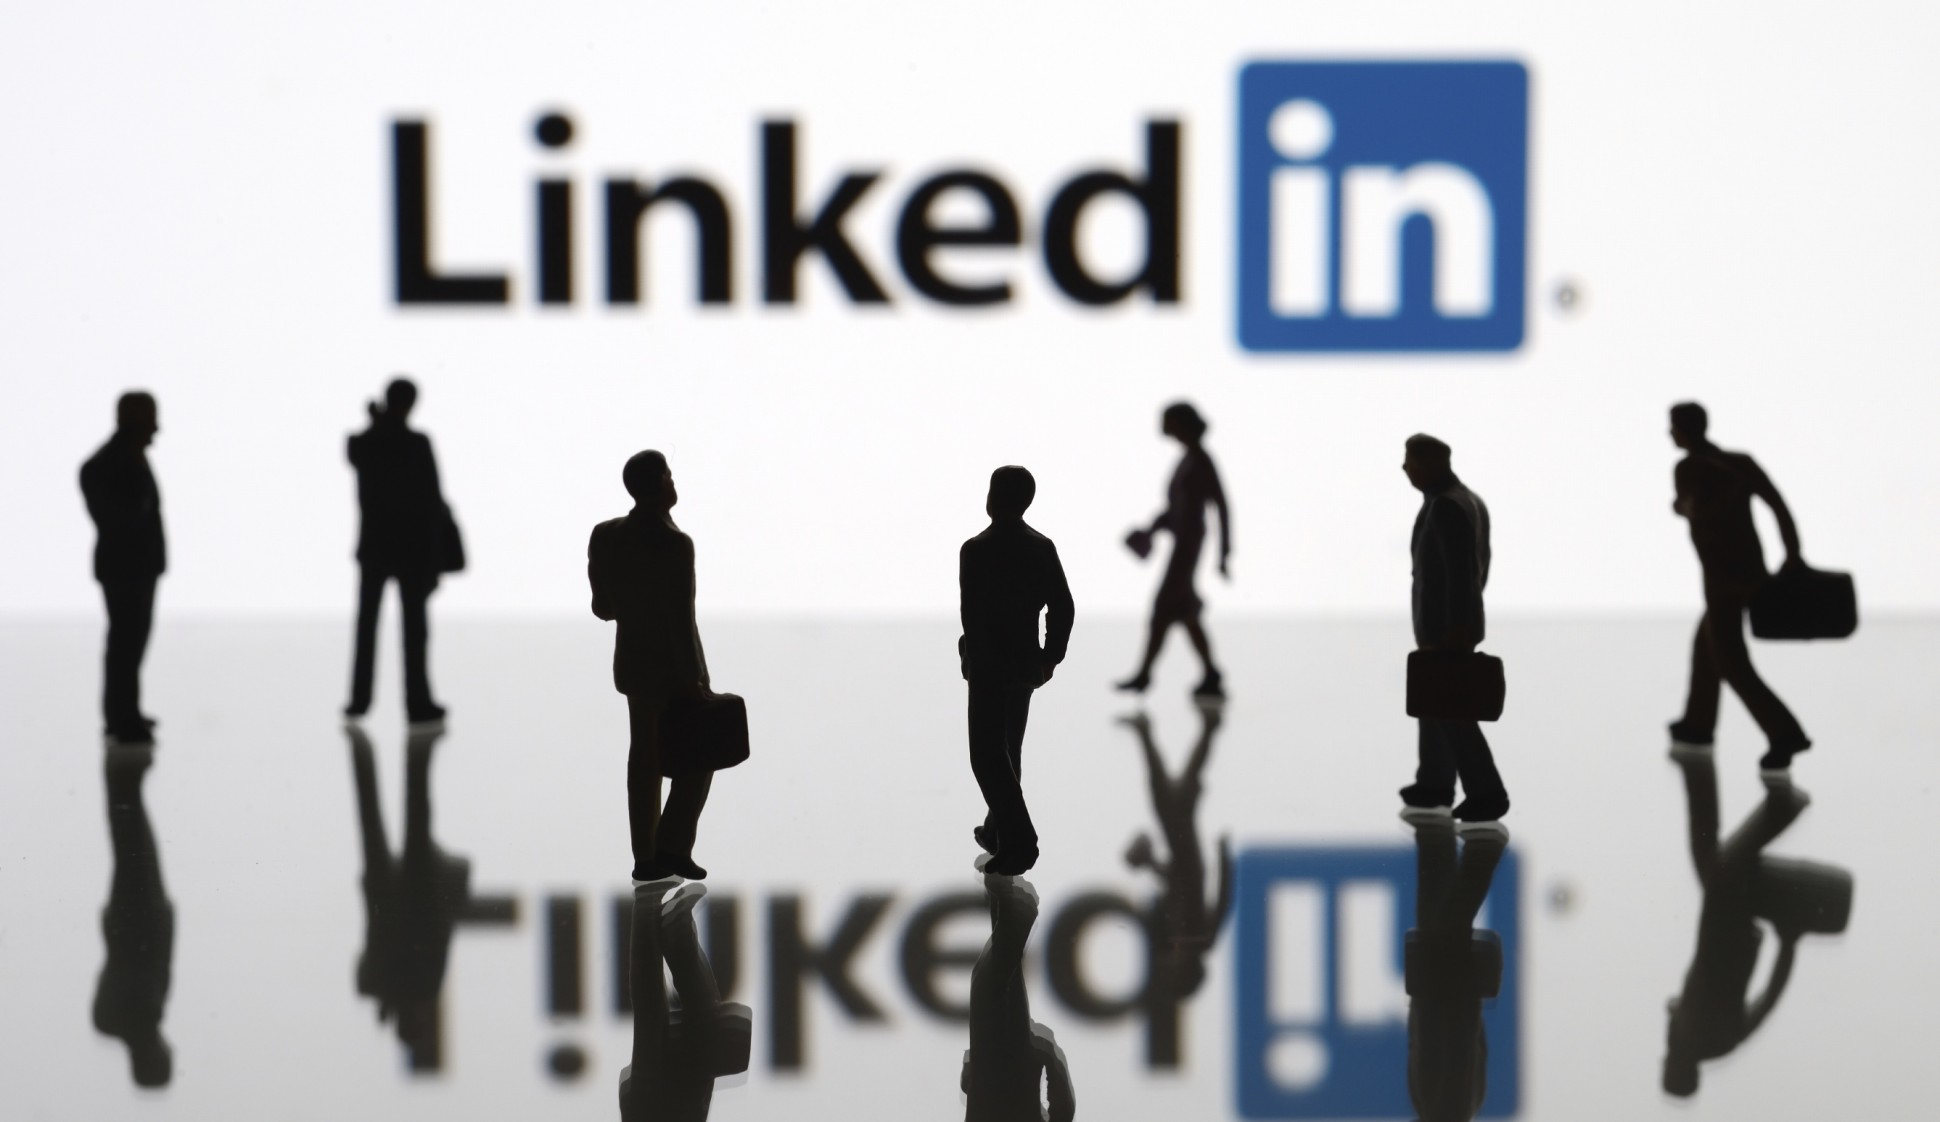 Using LinkedIn to improve your job search...